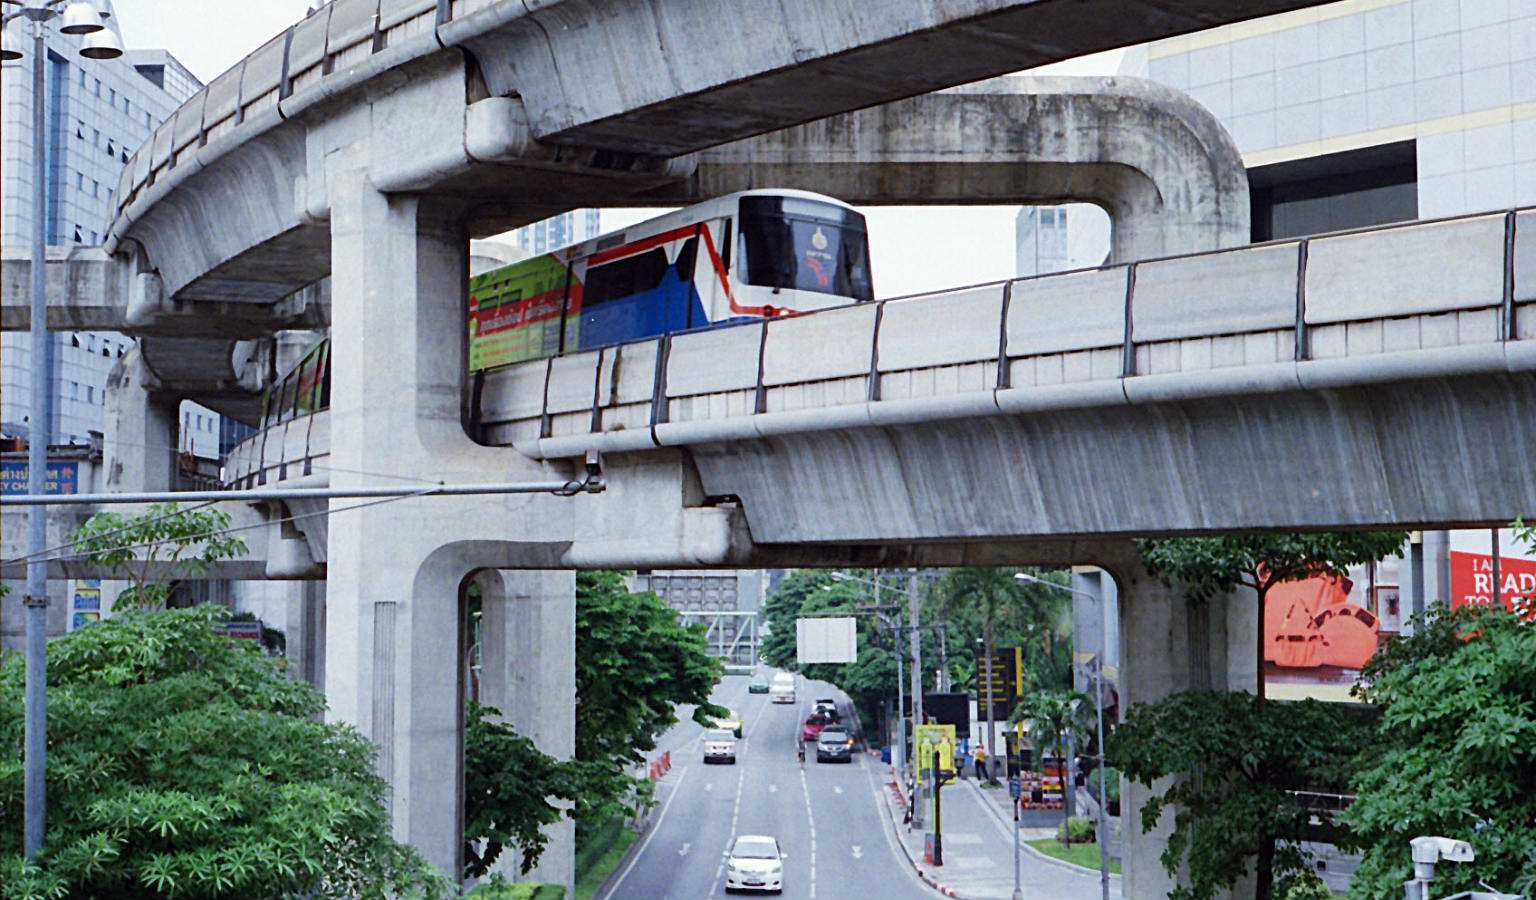 BTS Sky Train Sukhumvit lijn in Bangkok